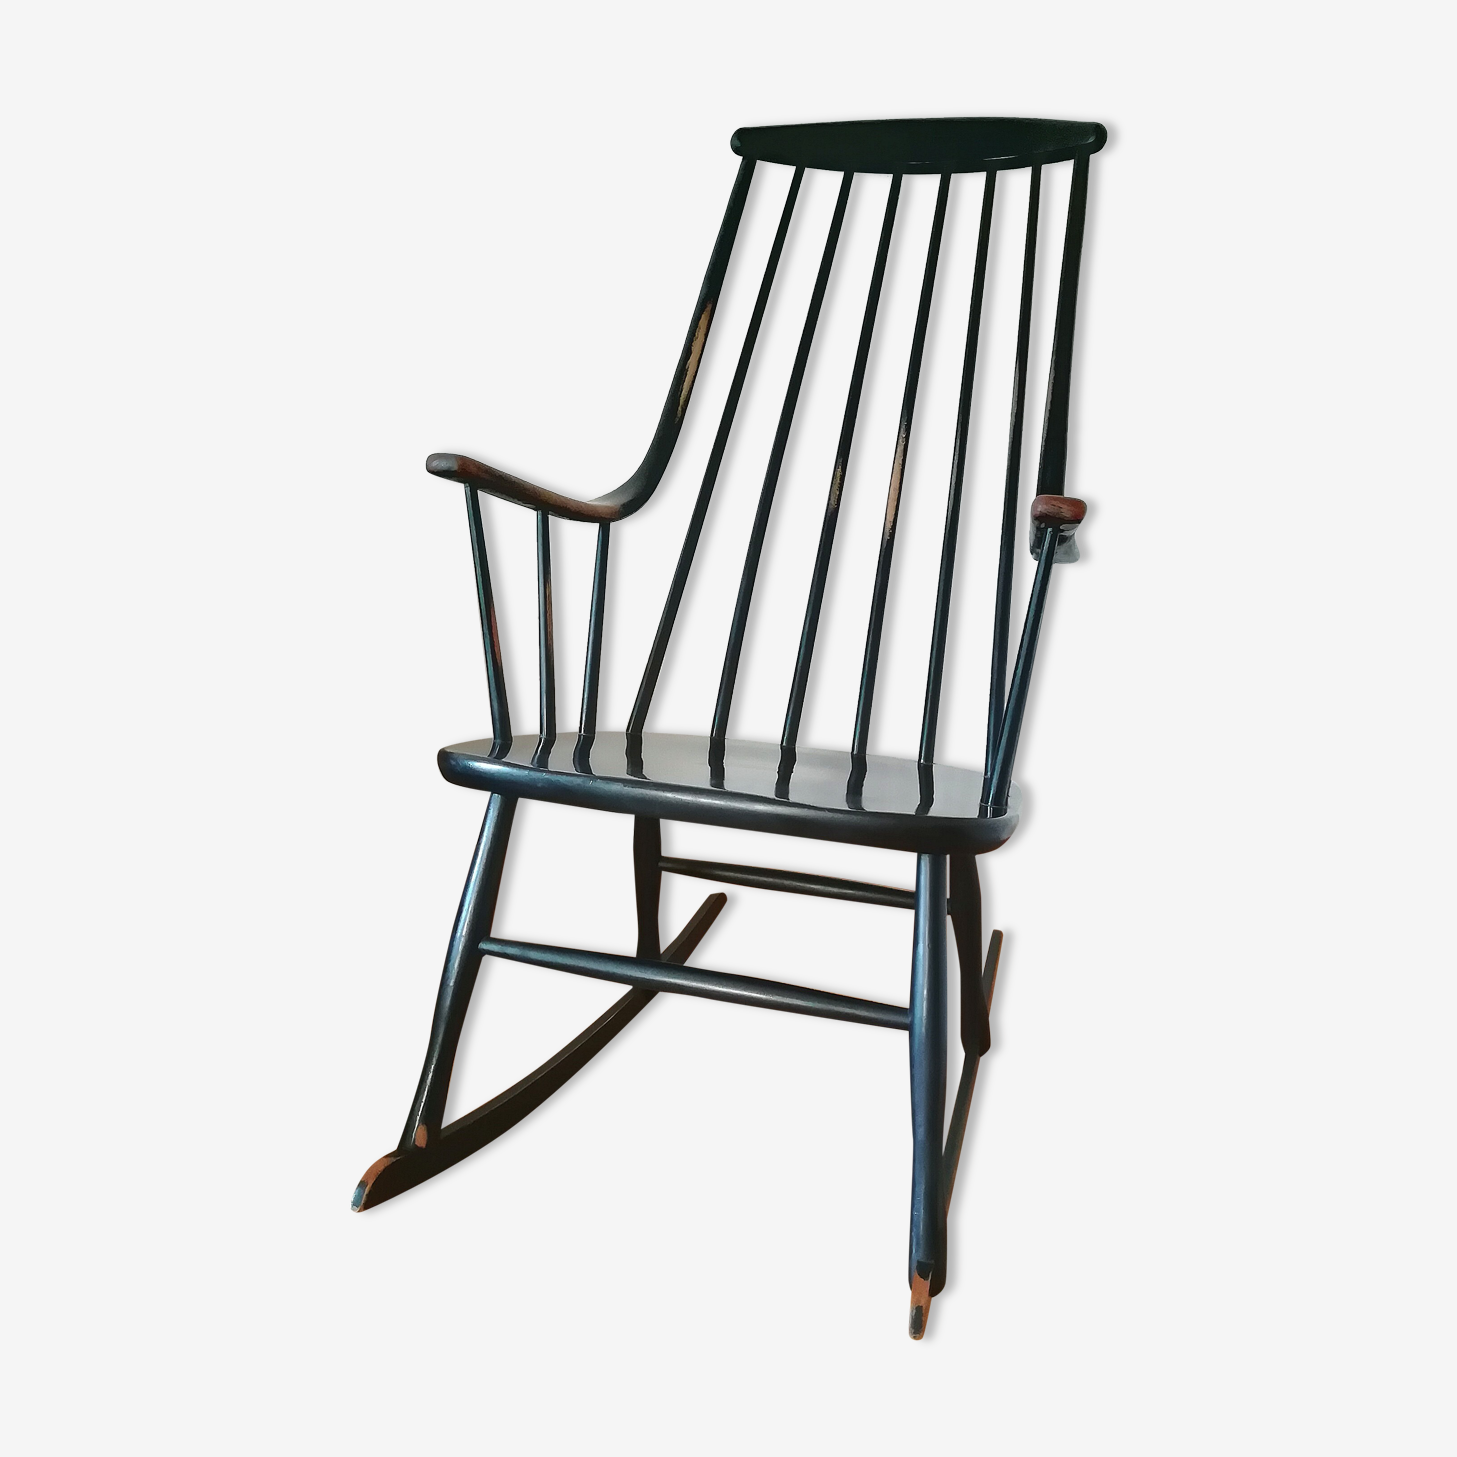 Scandinavian Grandessa black rocking chair by Lena Larsson